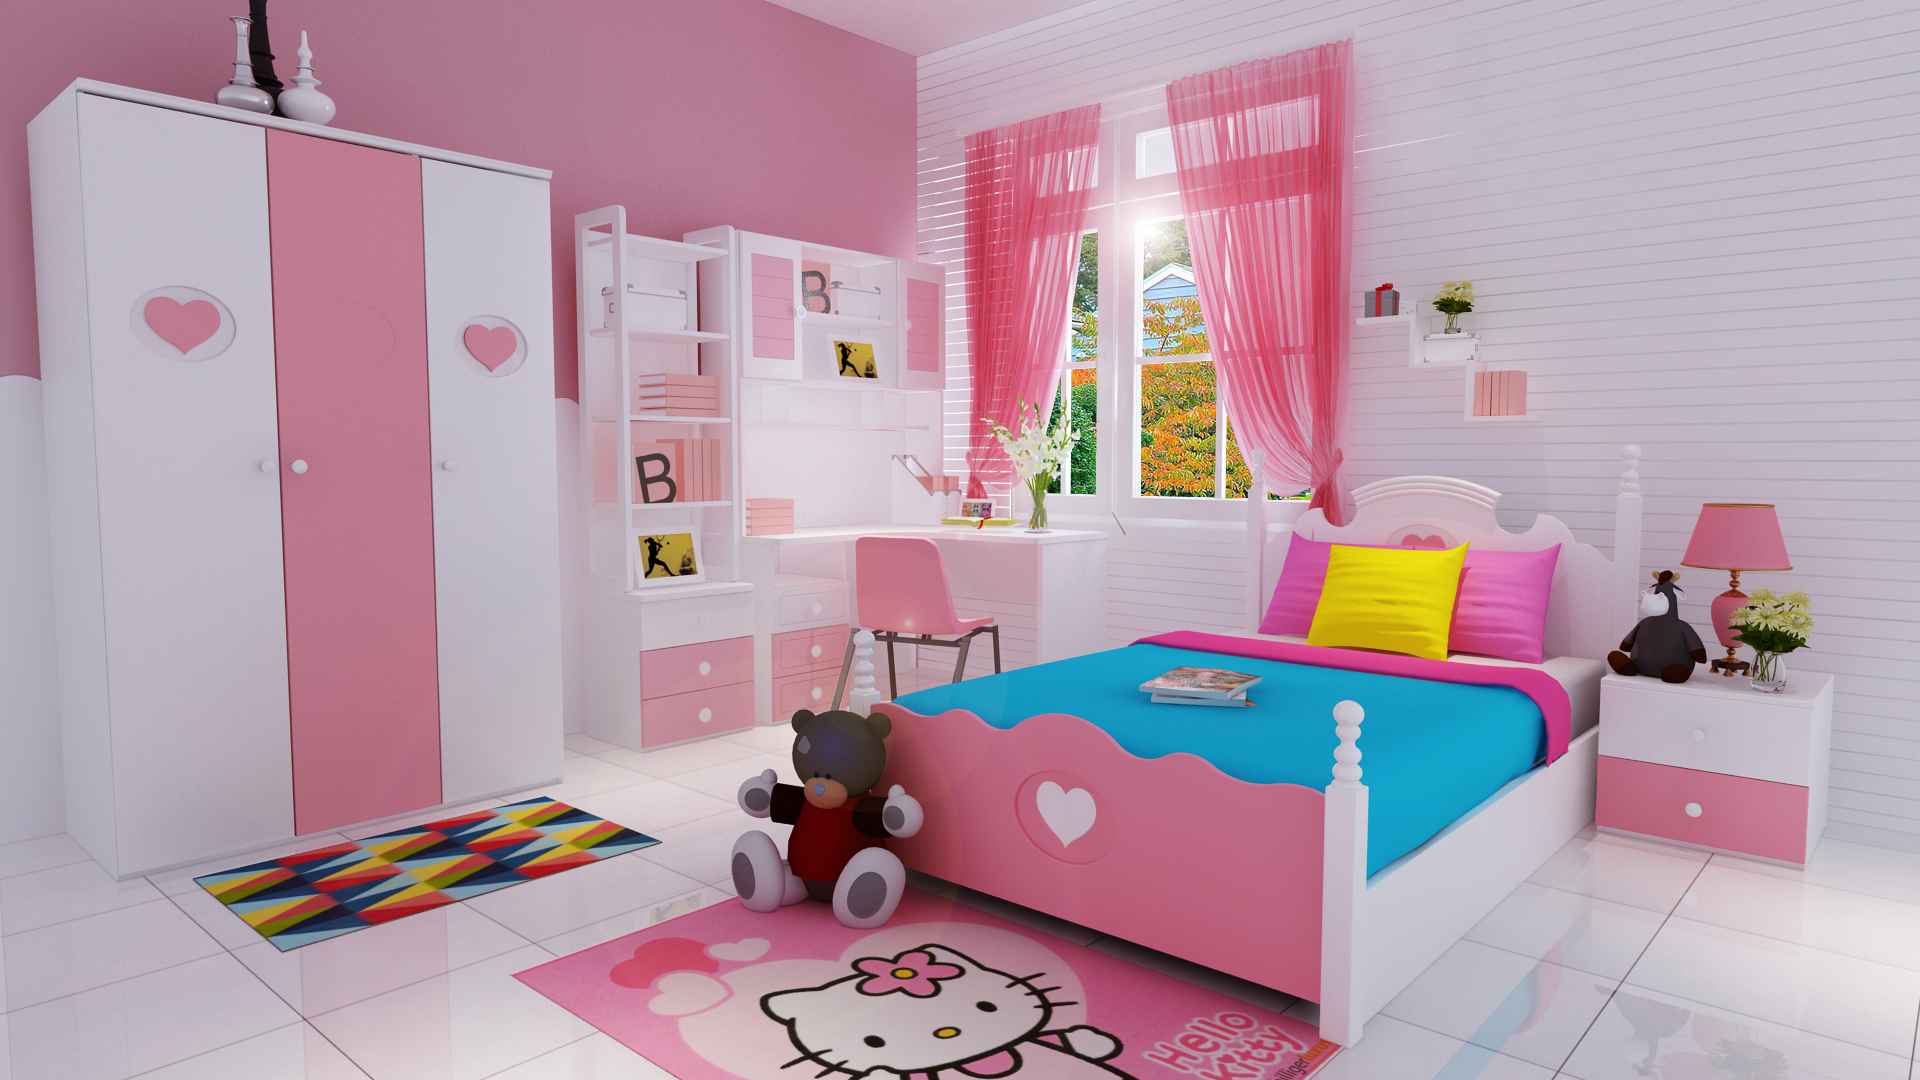 7 Inspiring Kid Room Color Options For Your Little Ones: Kids Bedroom Ideas